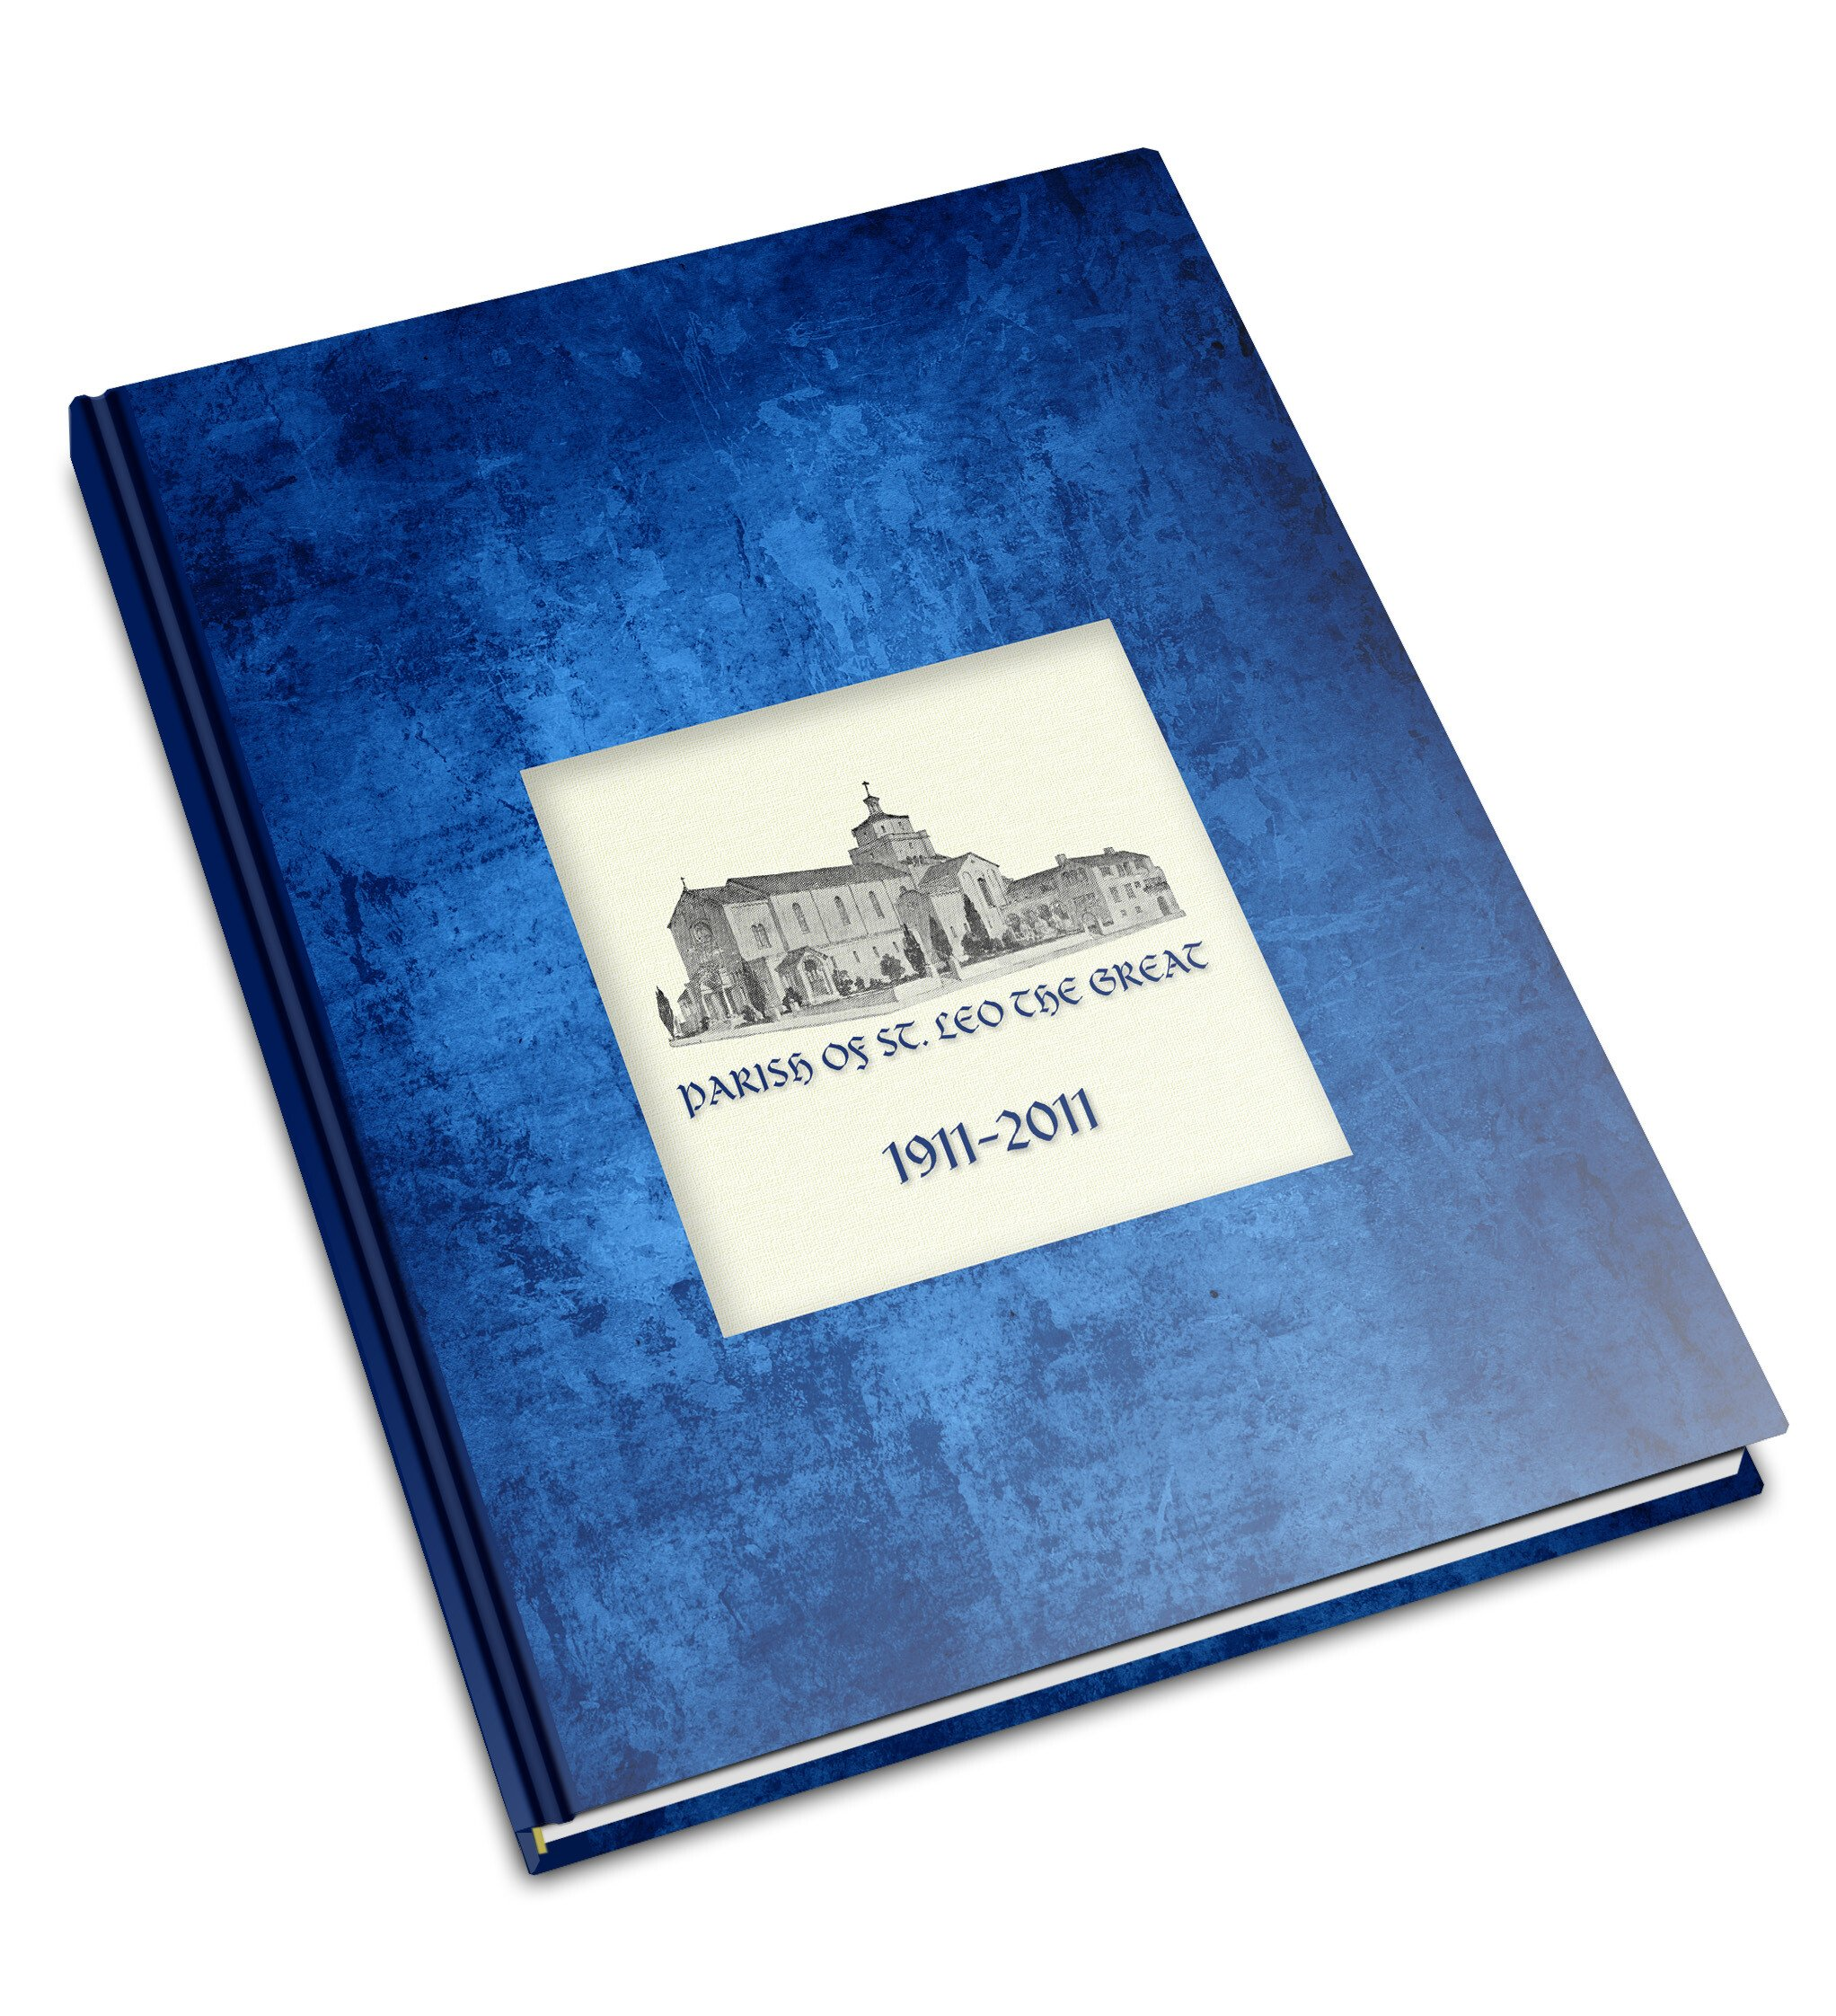 St. Leos Parish History Book